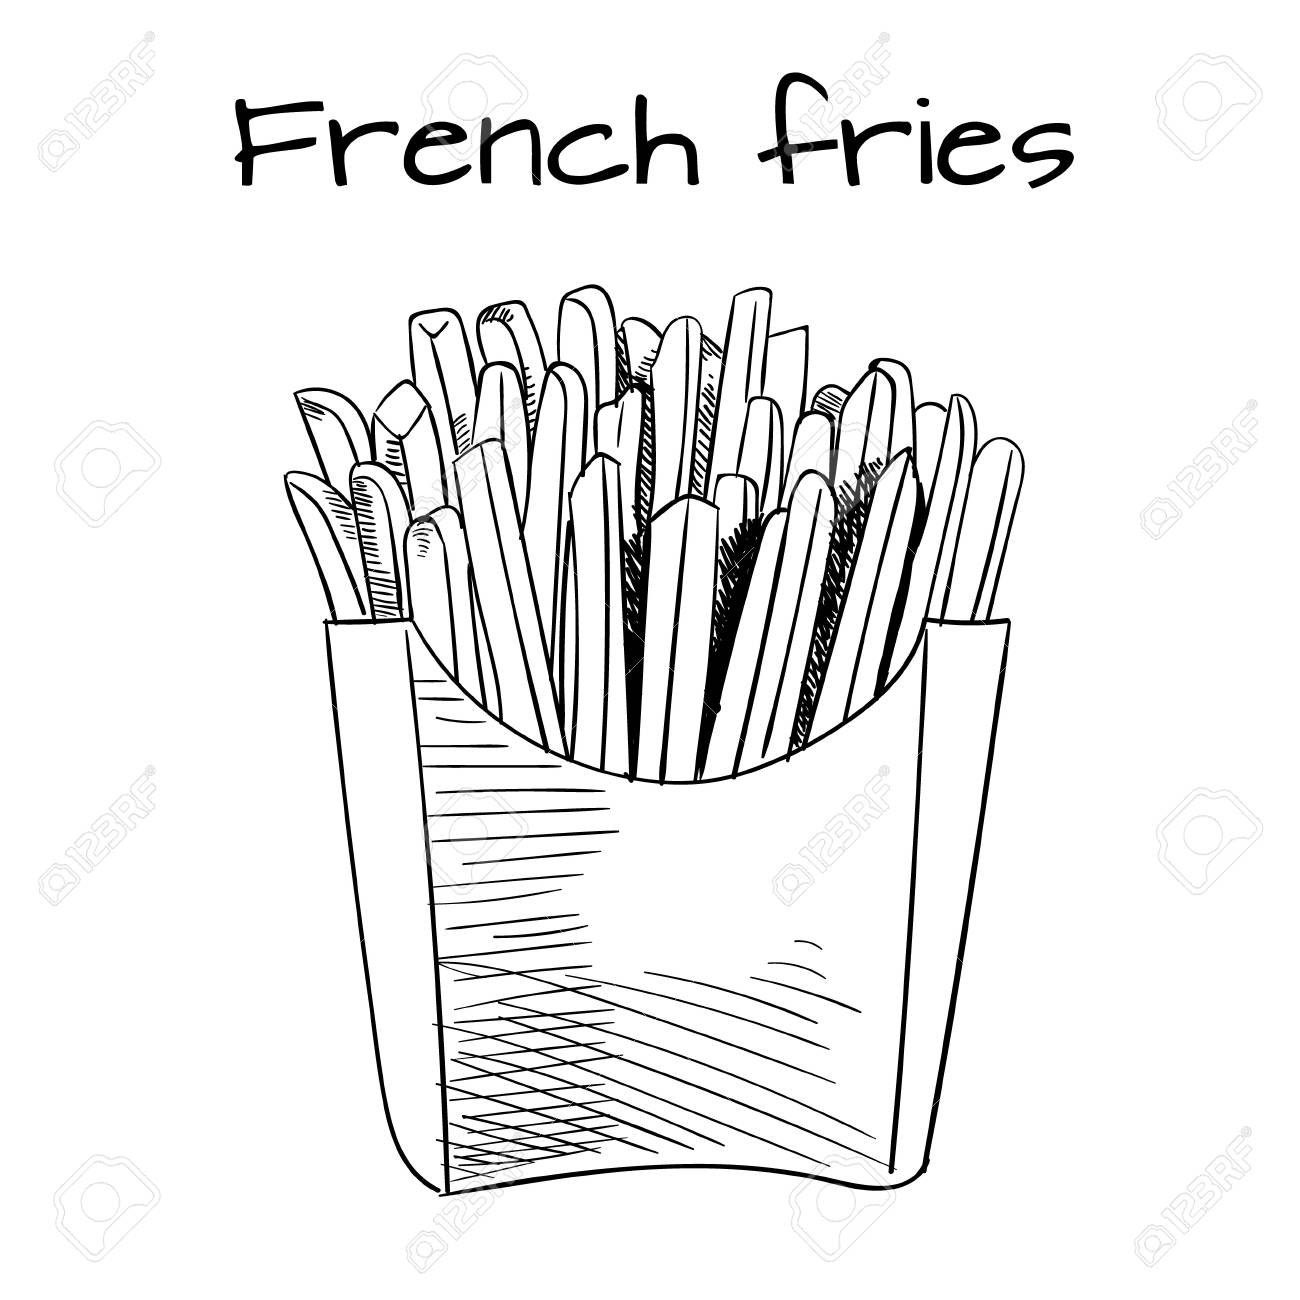 French Fry Drawing at GetDrawings.com | Free for personal use French ...